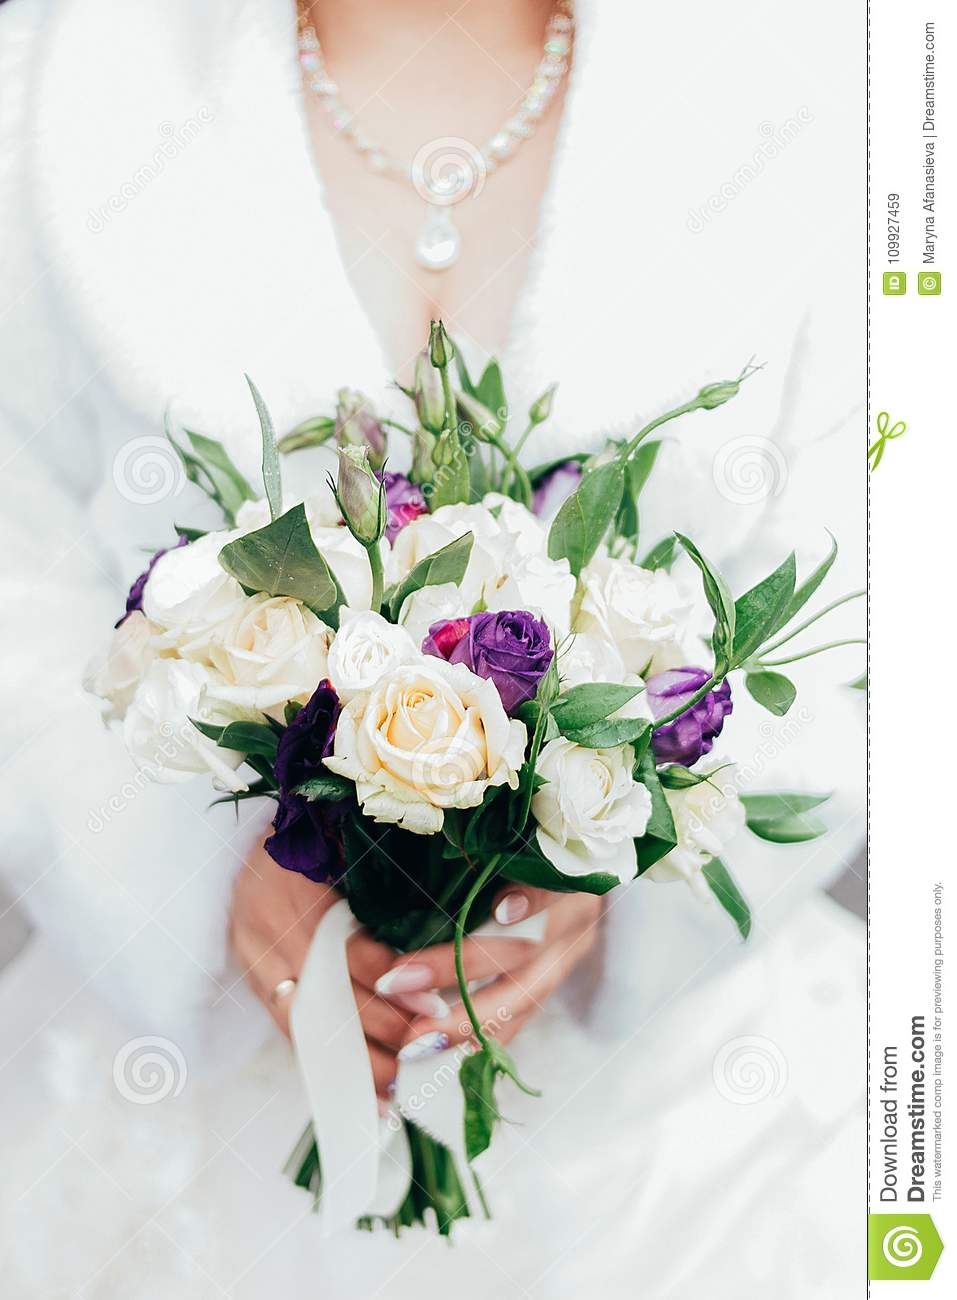 One white wedding bouquet holding in the hands stock image image download one white wedding bouquet holding in the hands stock image image of leaves izmirmasajfo